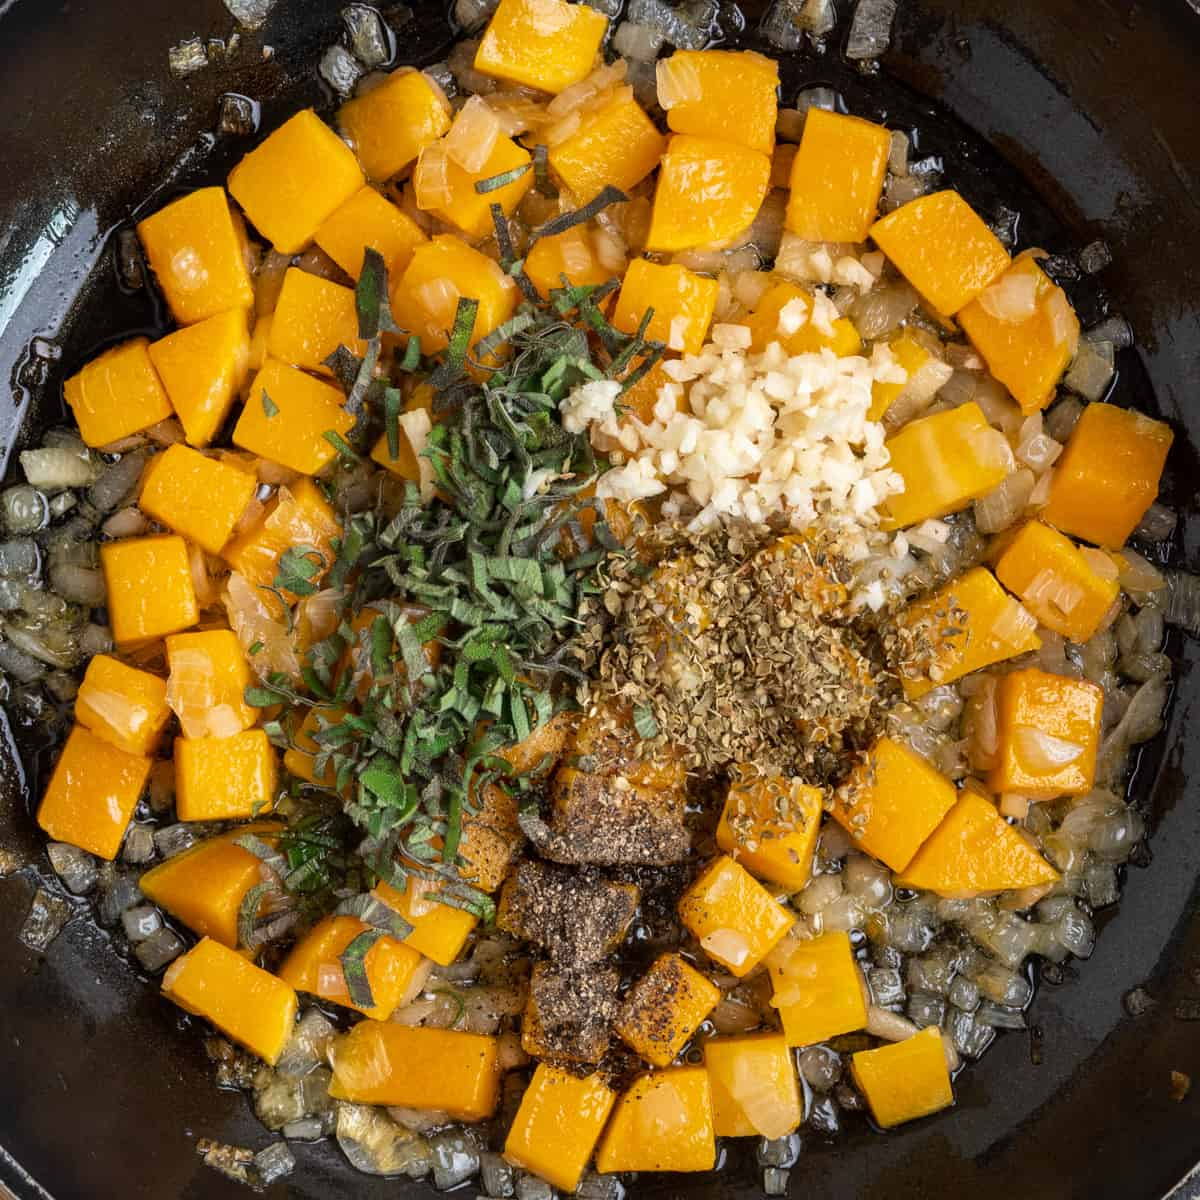 Garlic and herbs on top of sauteed butternut and onion in a pan.